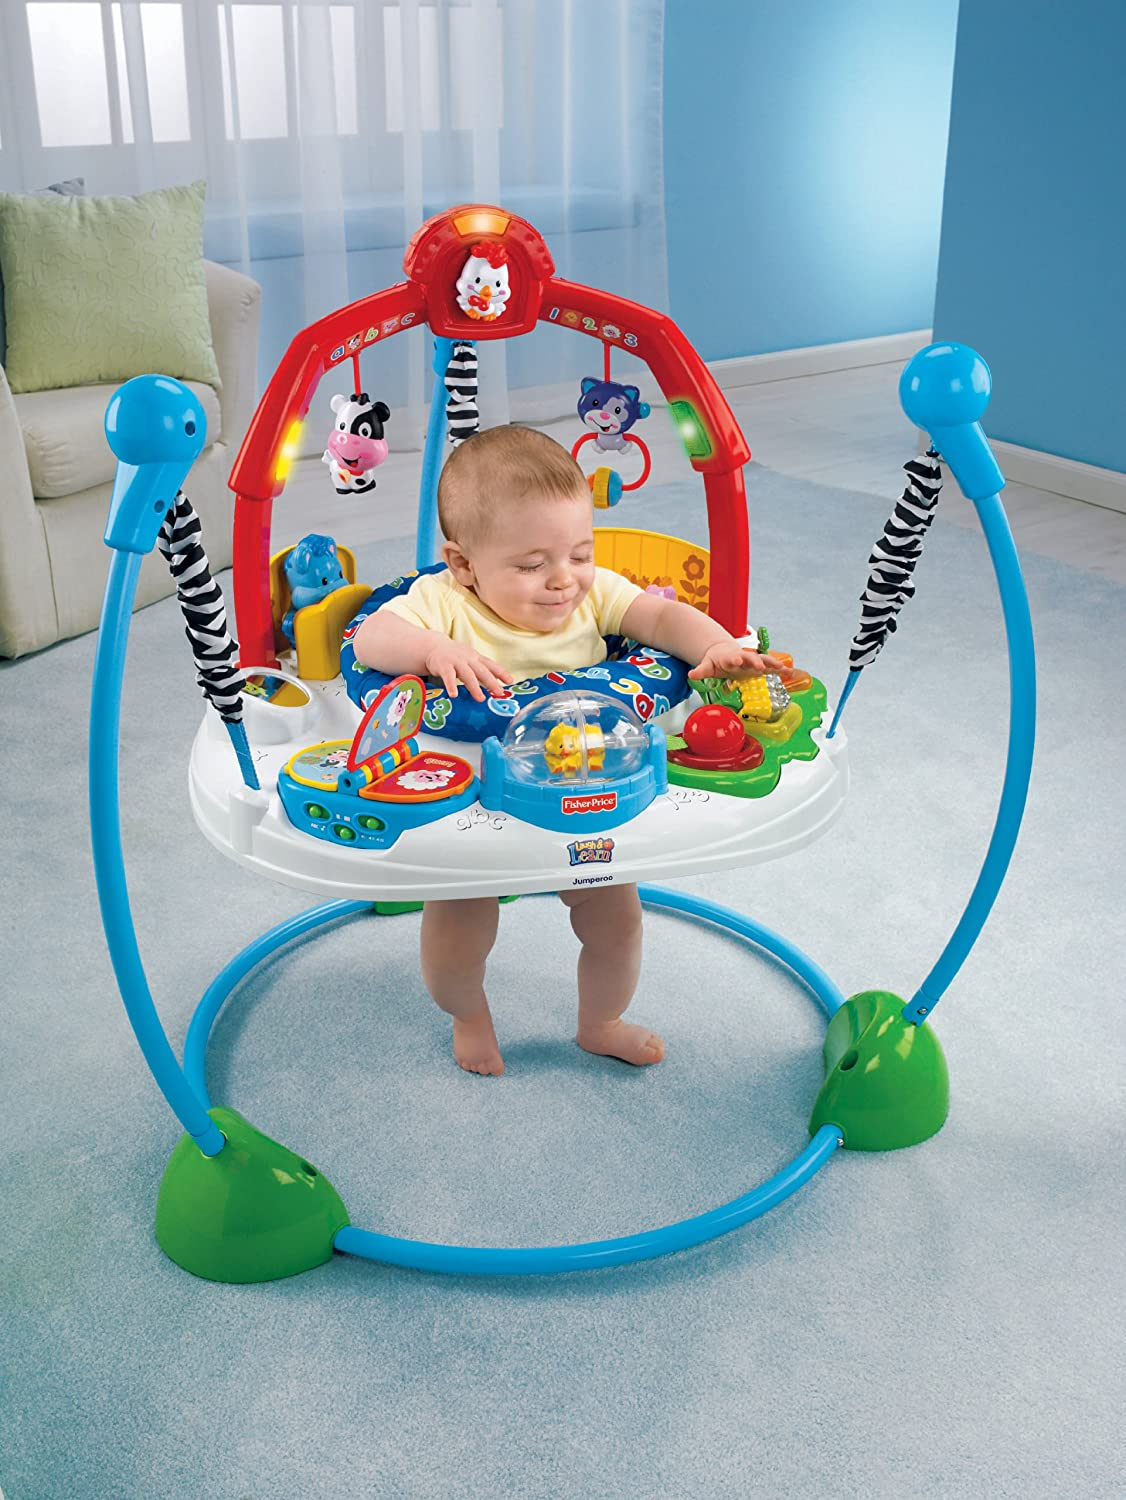 Adorable Animals Fisher Price Jumperoo - Amazon com fisher price laugh learn jumperoo early development activity centers baby